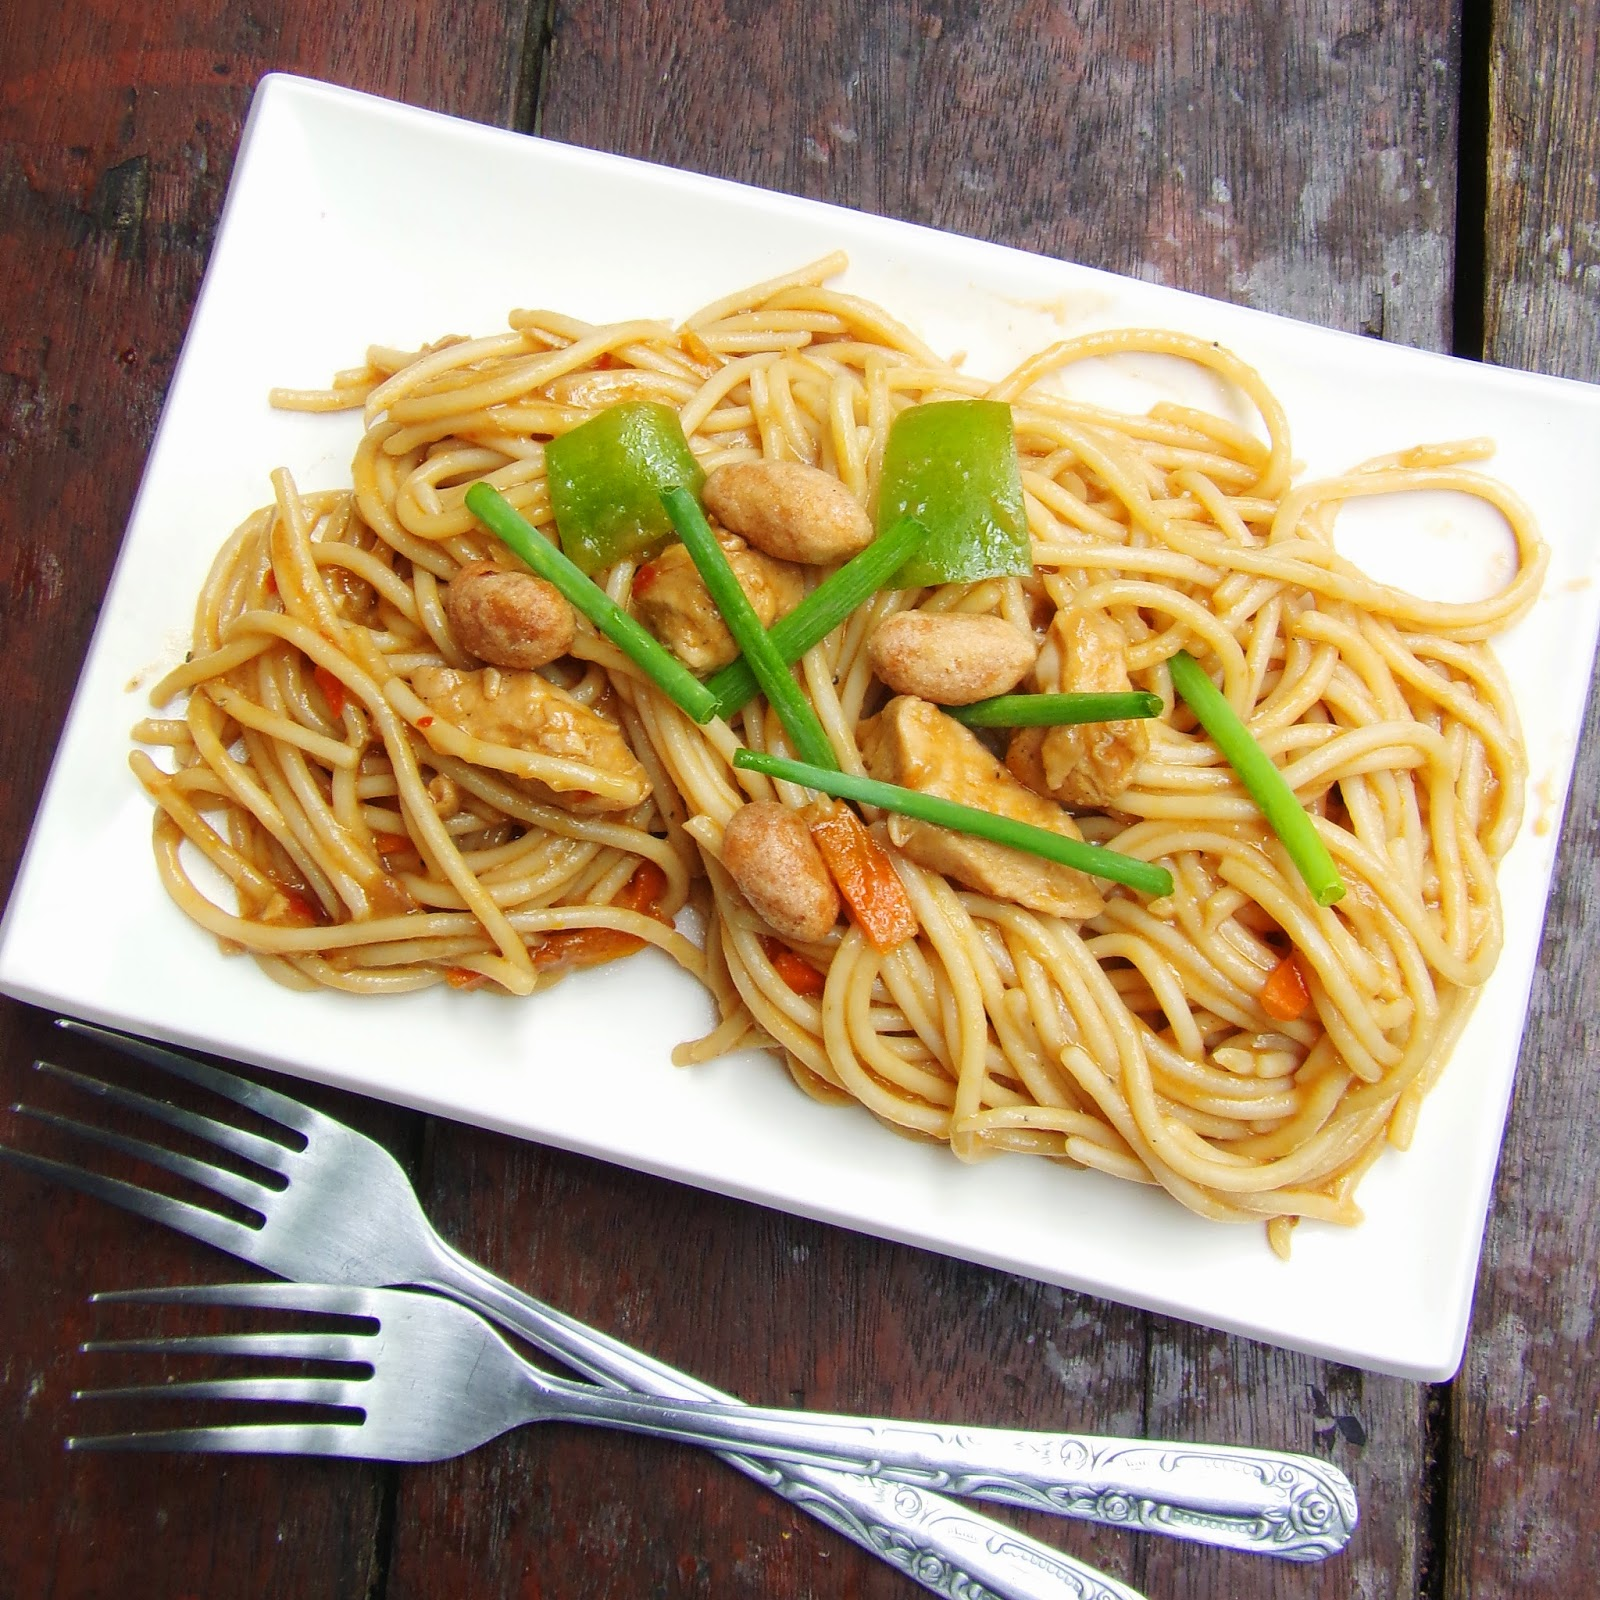 charlie chan pasta recipe, charlie chan yellow cab, pasta recipes easy, charlie chan chicken pasta, pasta sauce, easy recipes for chicken